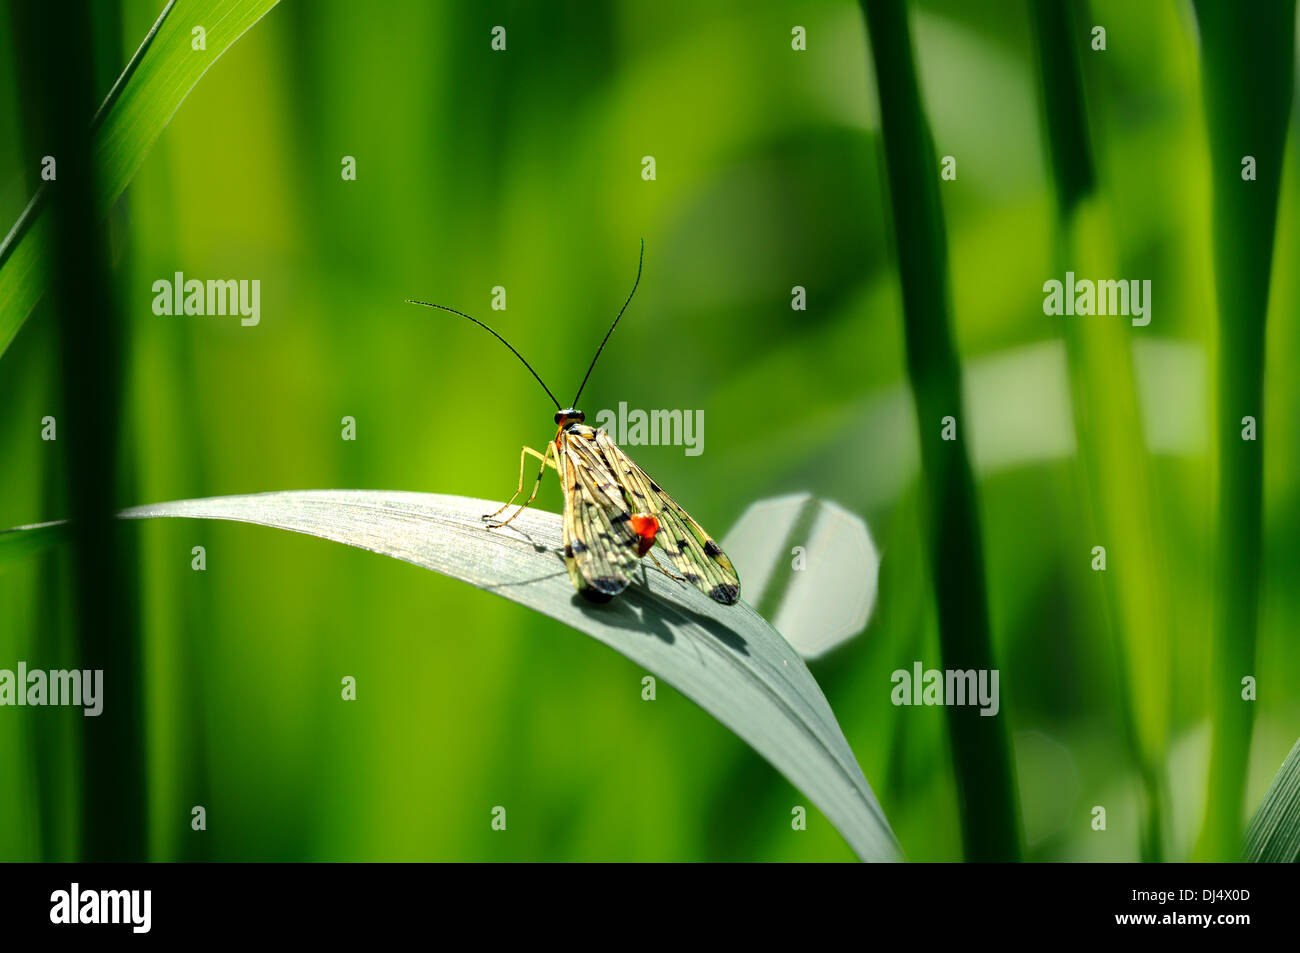 Scorpion fly in the grass - Stock Image